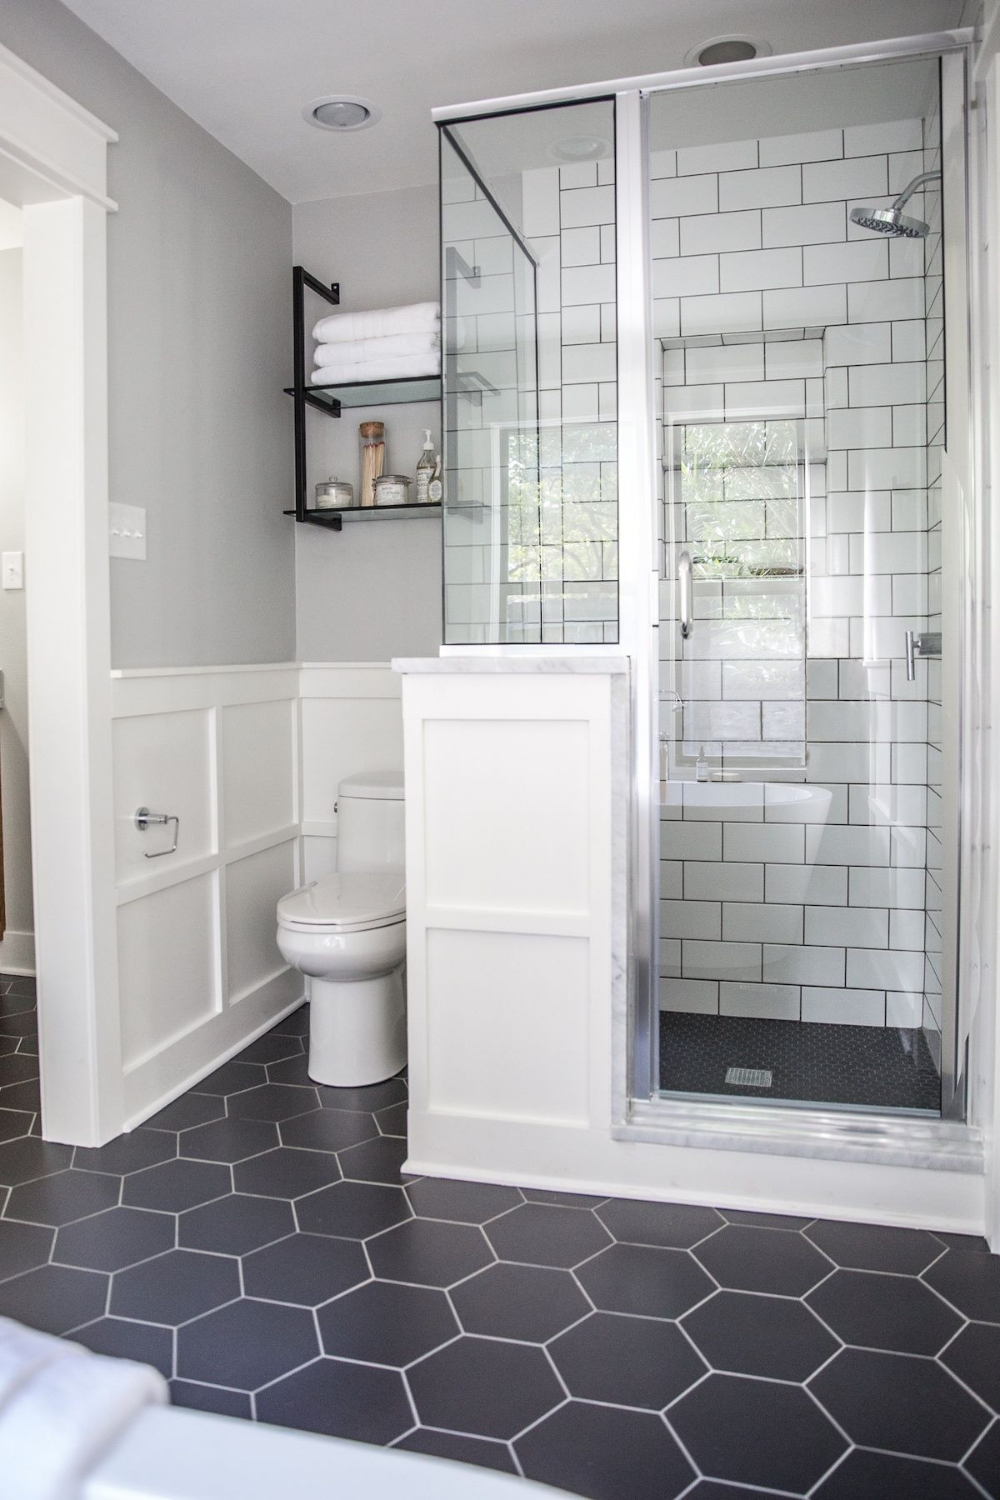 Bathroom Remodel York Pa Fresh A Master Bathroom Renovation Bathrooms Pinterest Bathroom Desig Master Bathroom Renovation Bathroom Layout Minimalist Bathroom